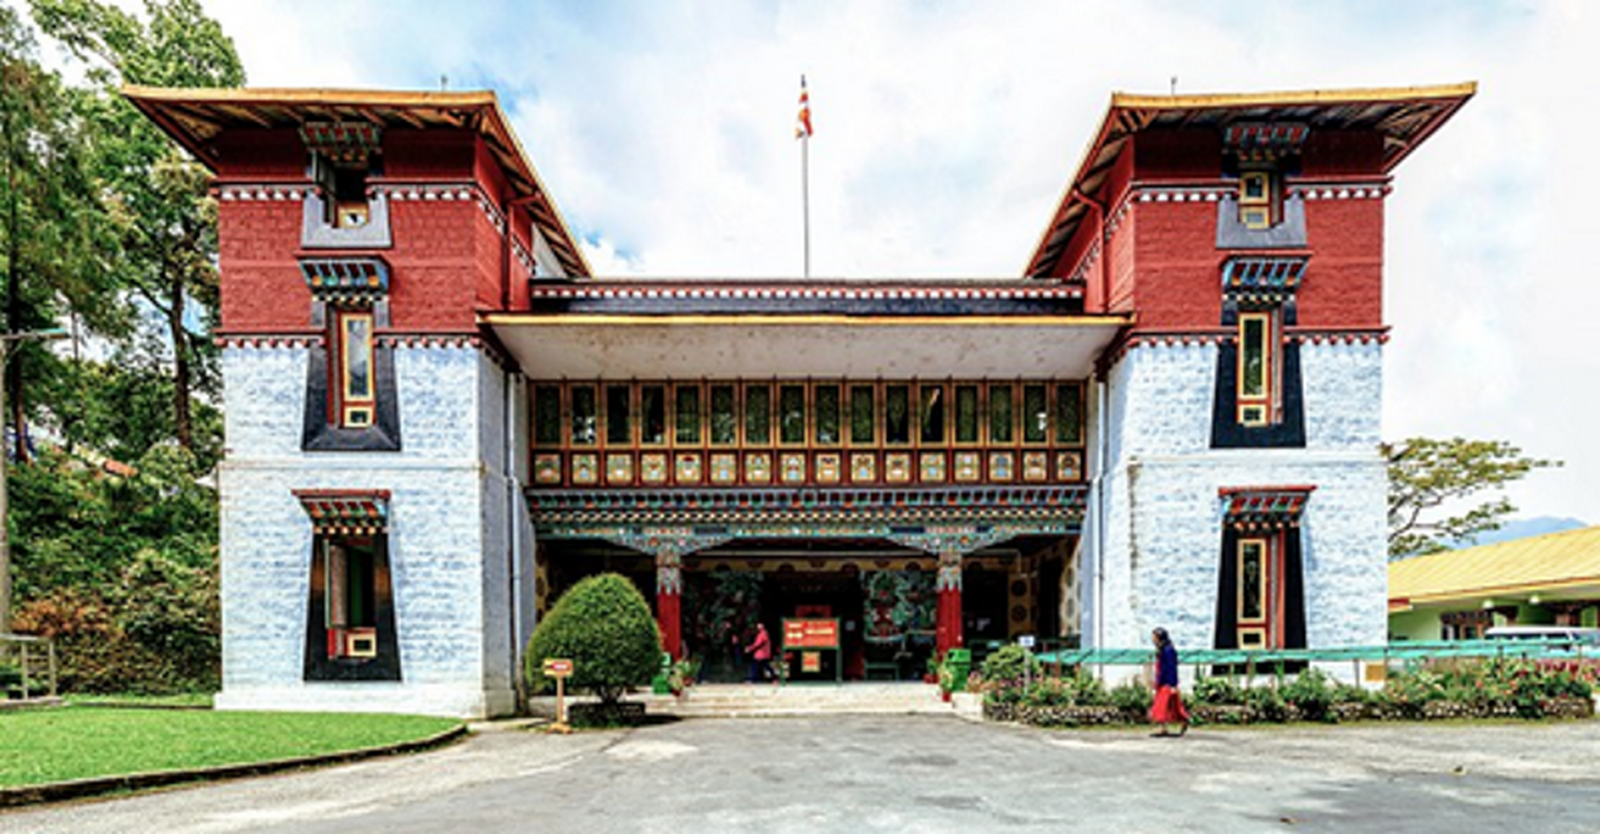 Architecture of Indian Cities Gangtok- Inside the tranquility of Buddhist heritage - Sheet11